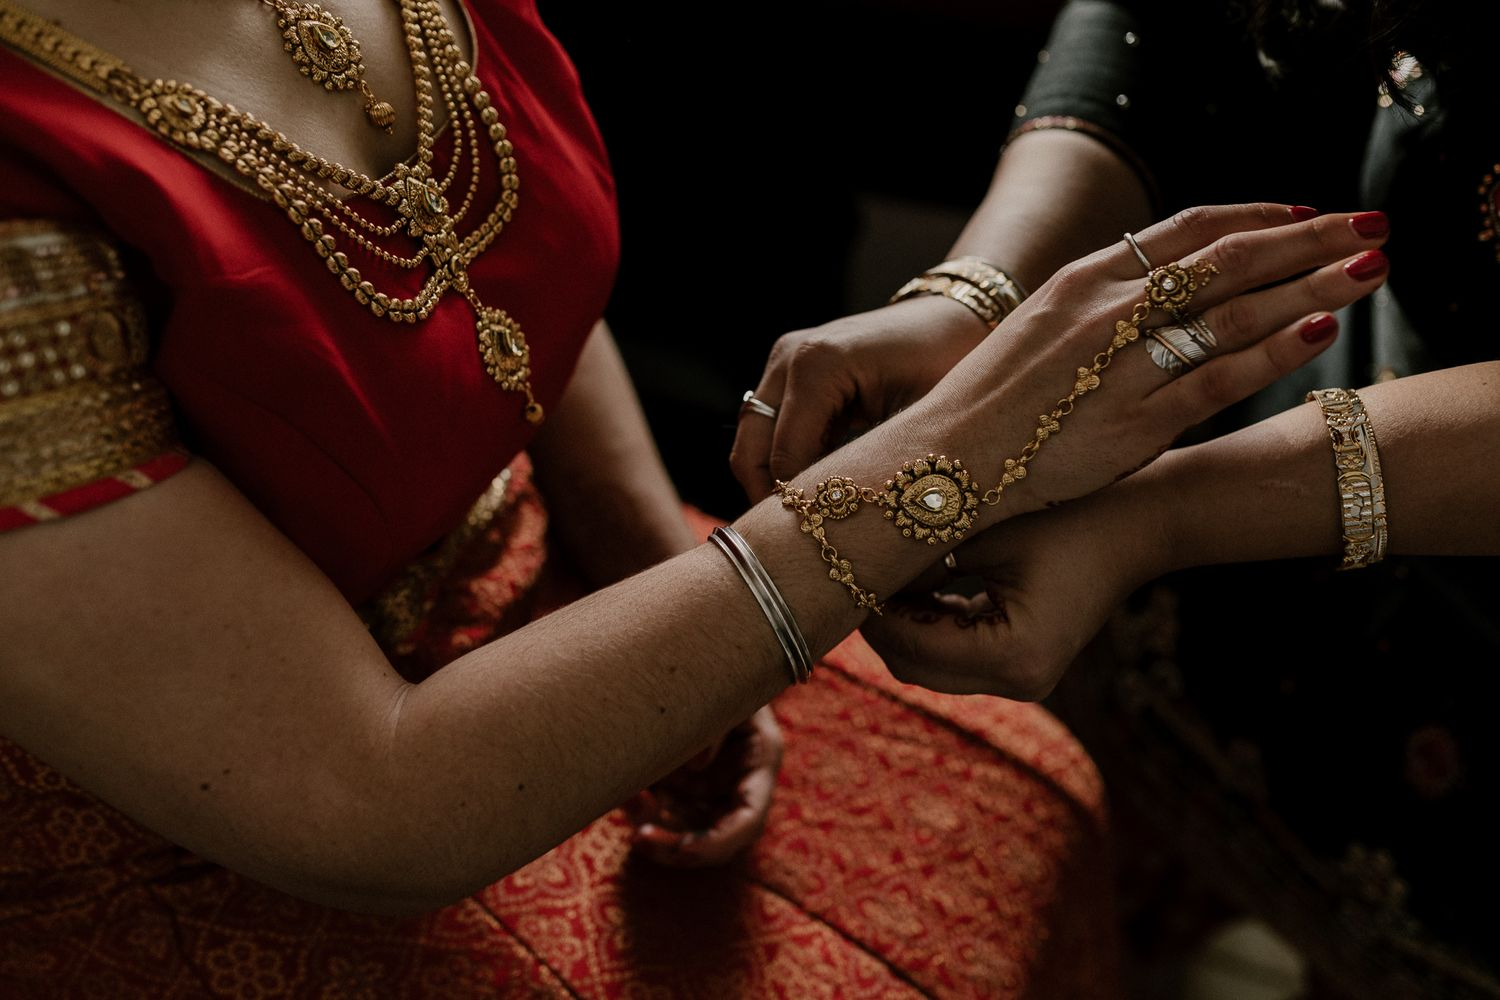 Toronto Sikh bride putting on her gold jewelry in red lehenga.